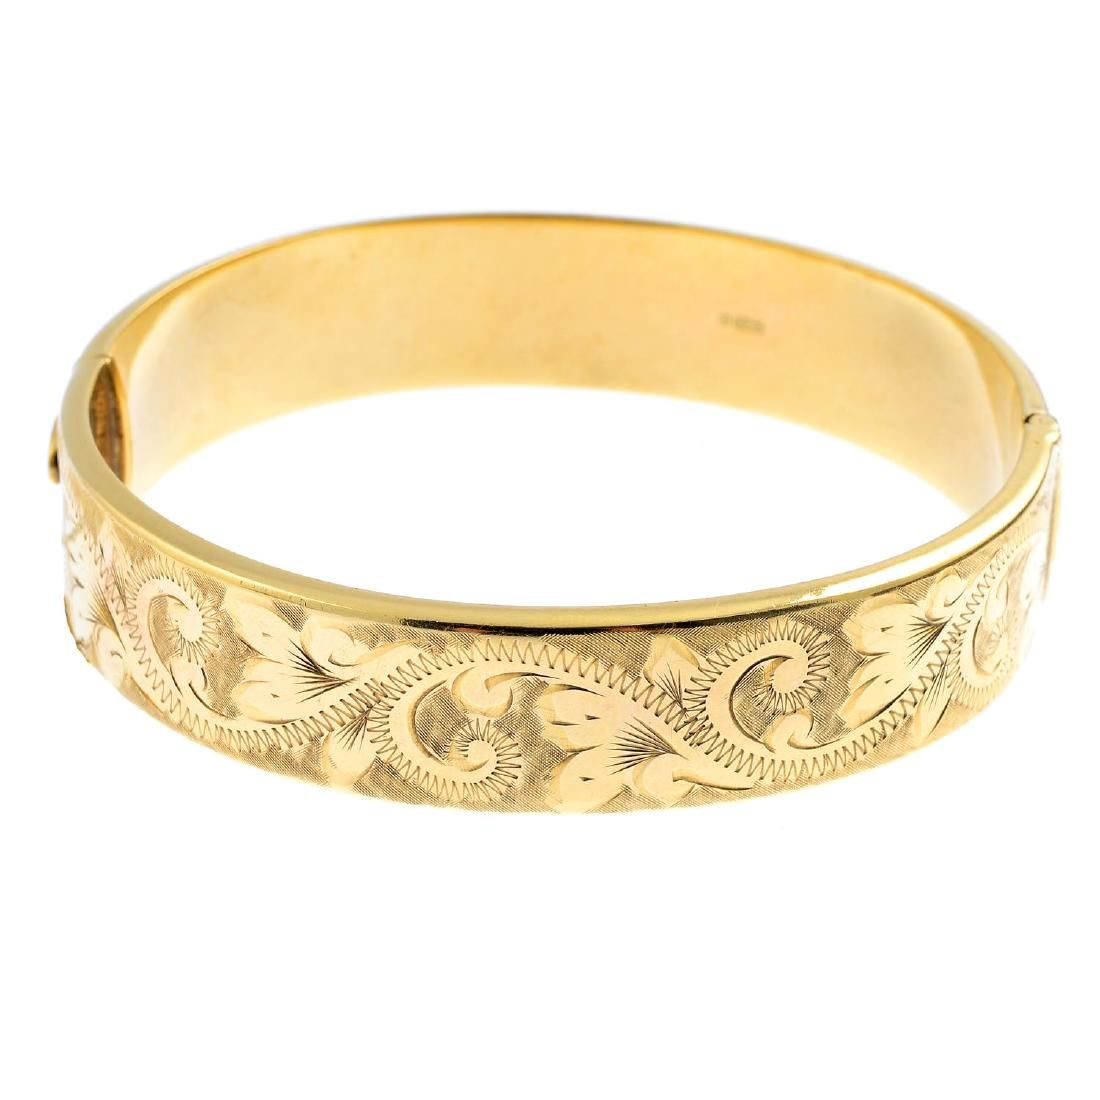 (21770) A 1970s 9ct gold hinged bangle. The scrolling